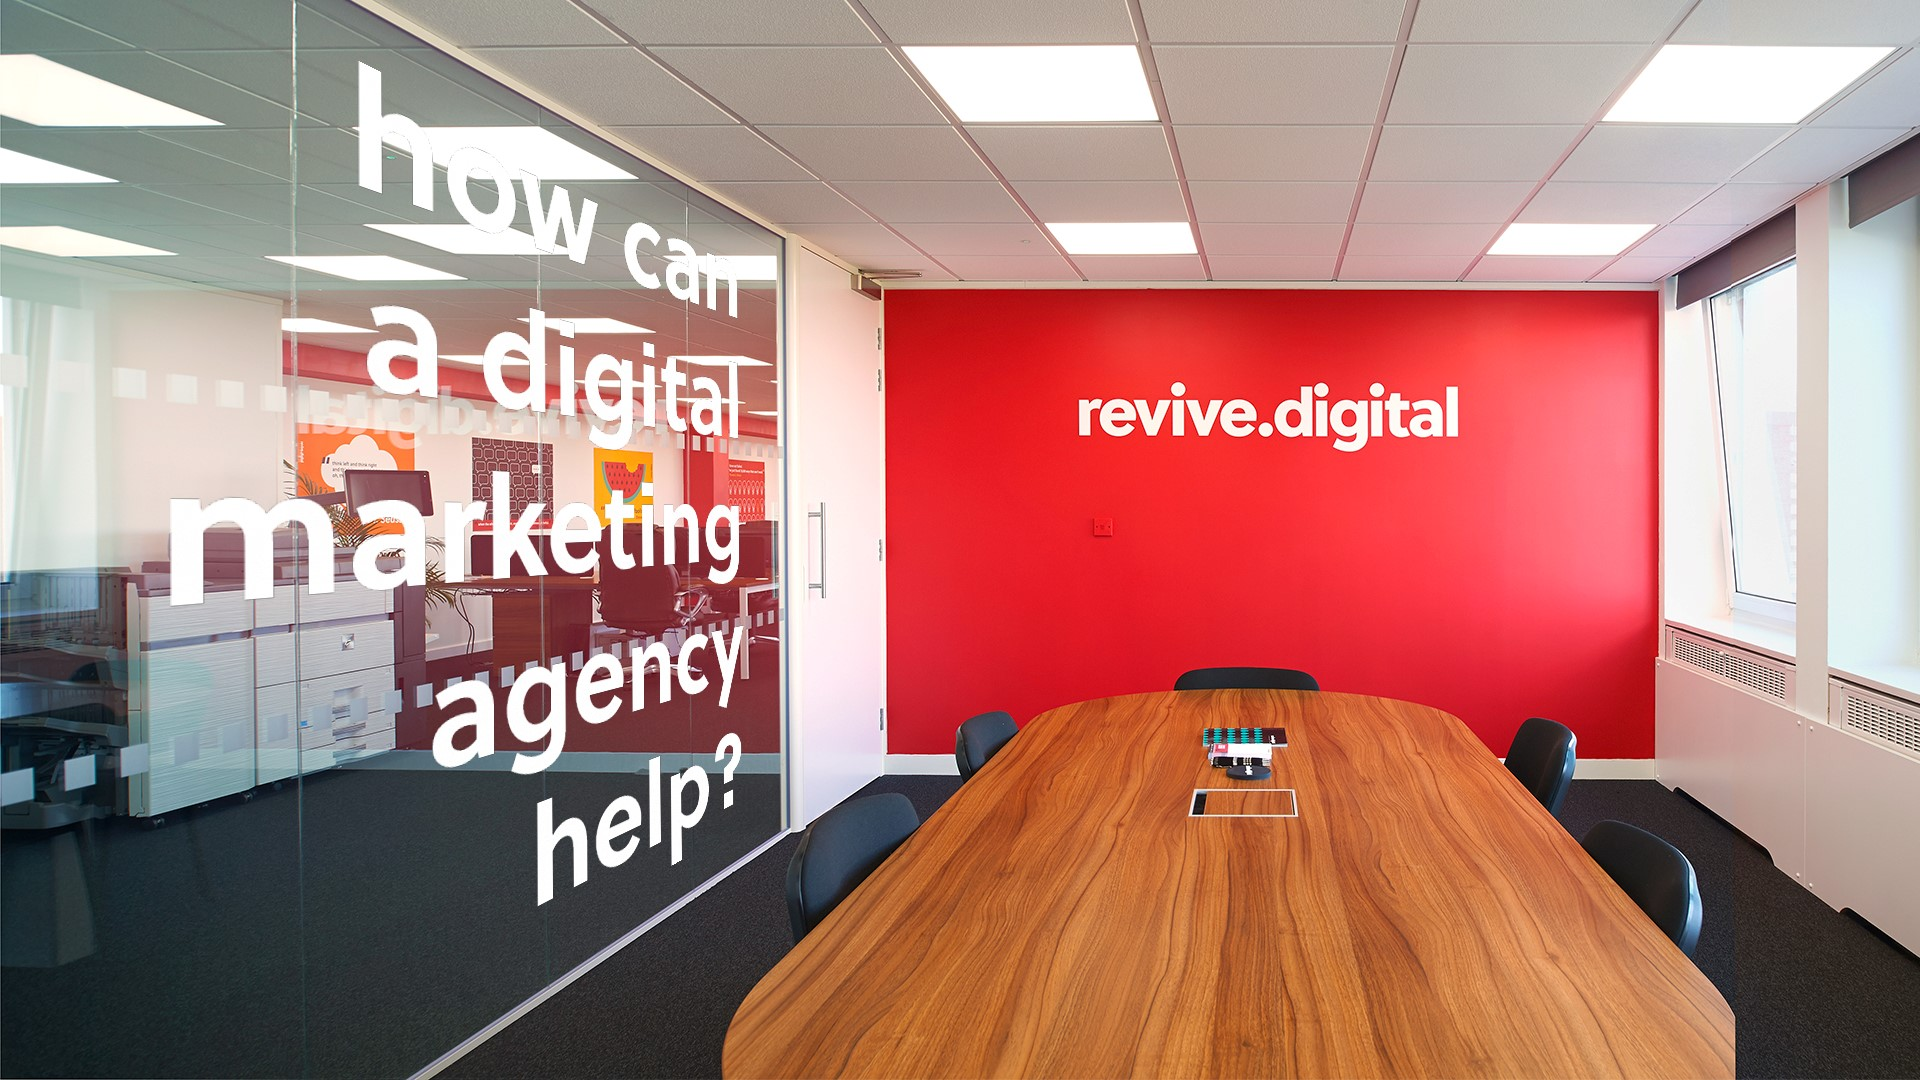 how can a digital marketing agency help?